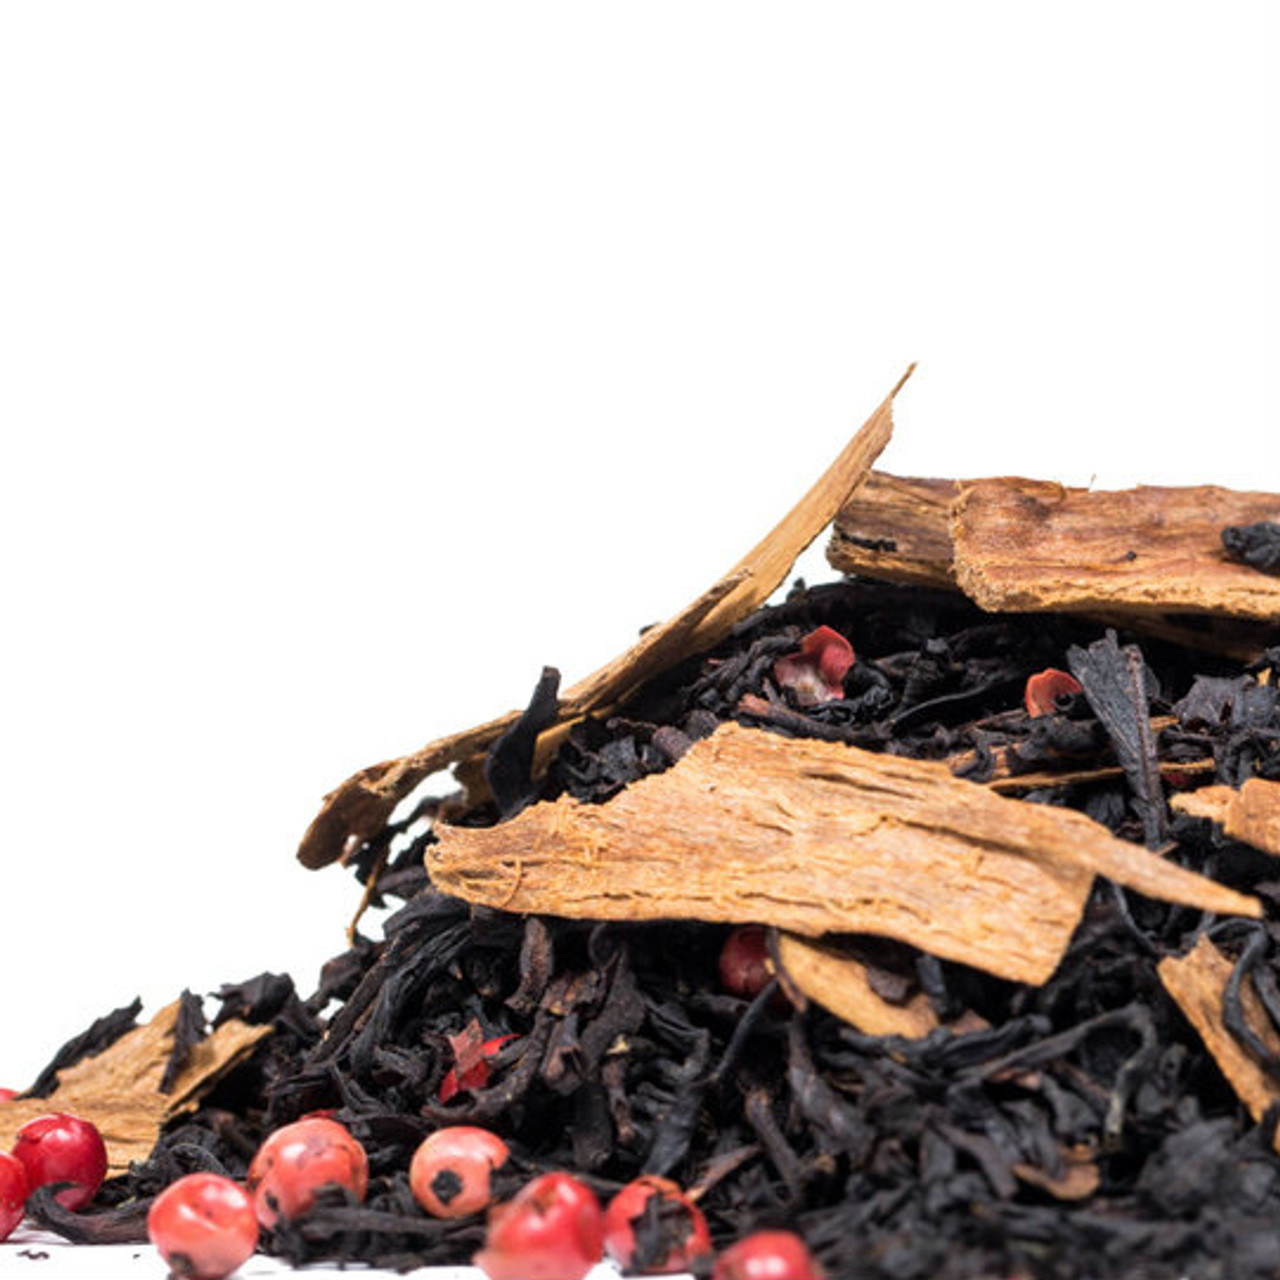 Spiced Orange Cinnamon Black is our incredibly popular Indian Assam black tea that unites just the right amount of sweetness, citrus and spice to create a full bodied and well balanced tea that is equally delicious when hot and iced. Steep: 1-1.5 tsp, Boiling Water, 3-5 Minutes